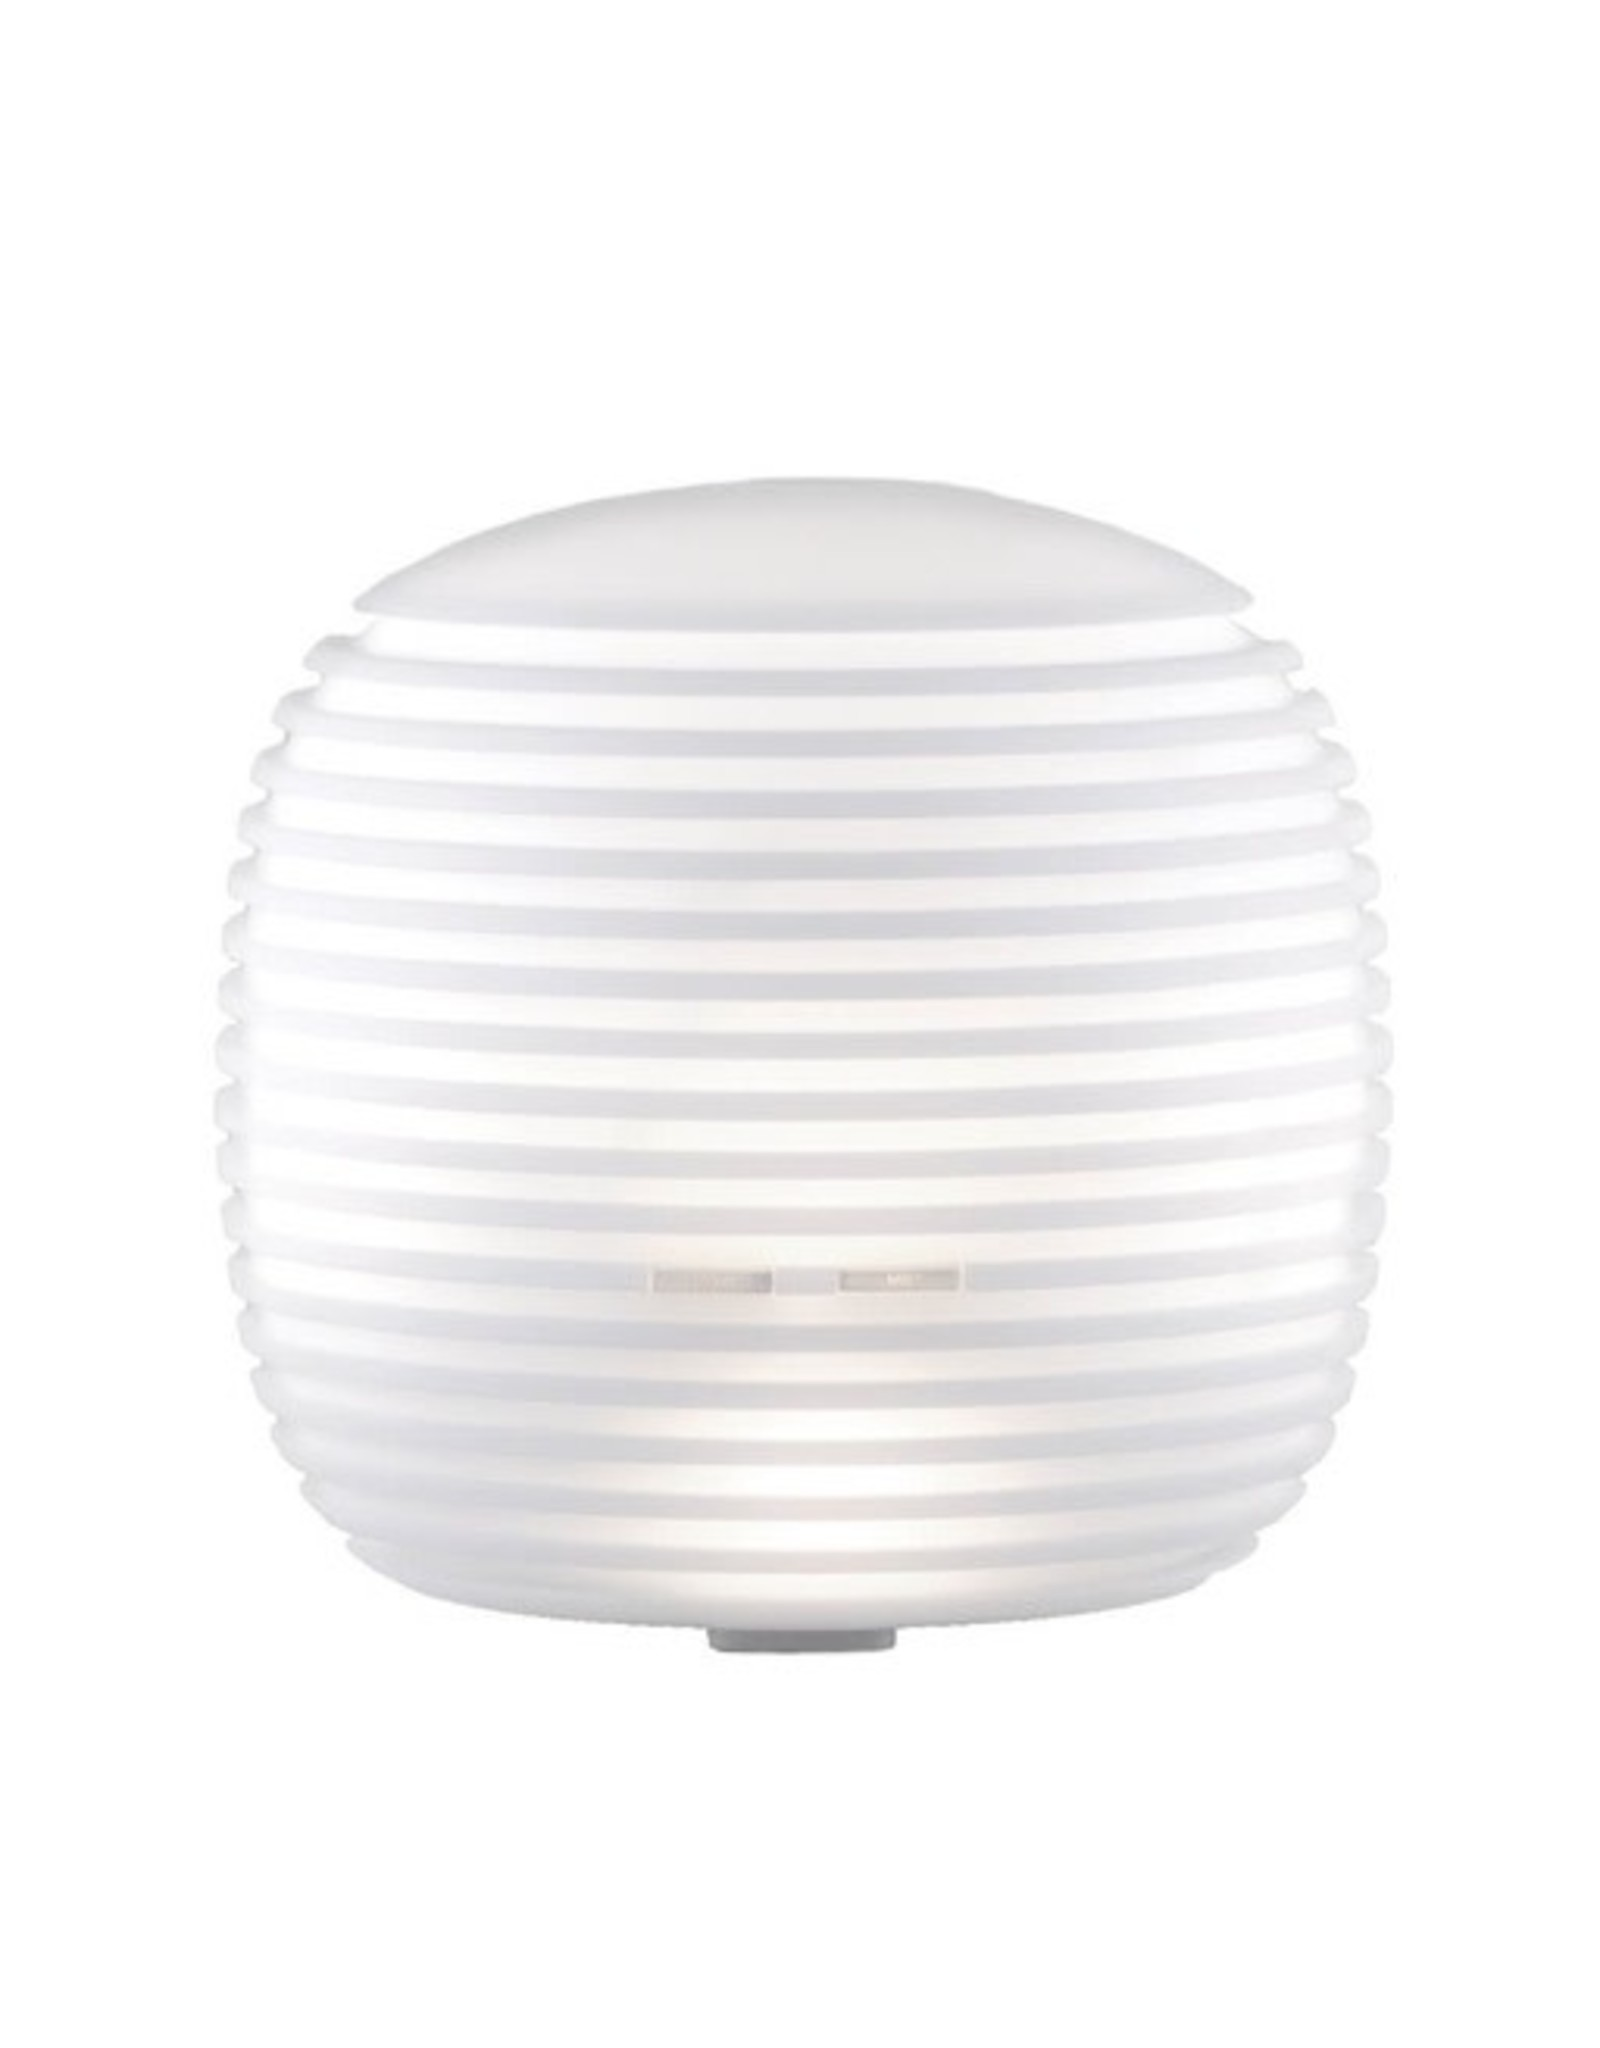 SpaRoom Halo Ultrasonic Essential Oil Diffuser